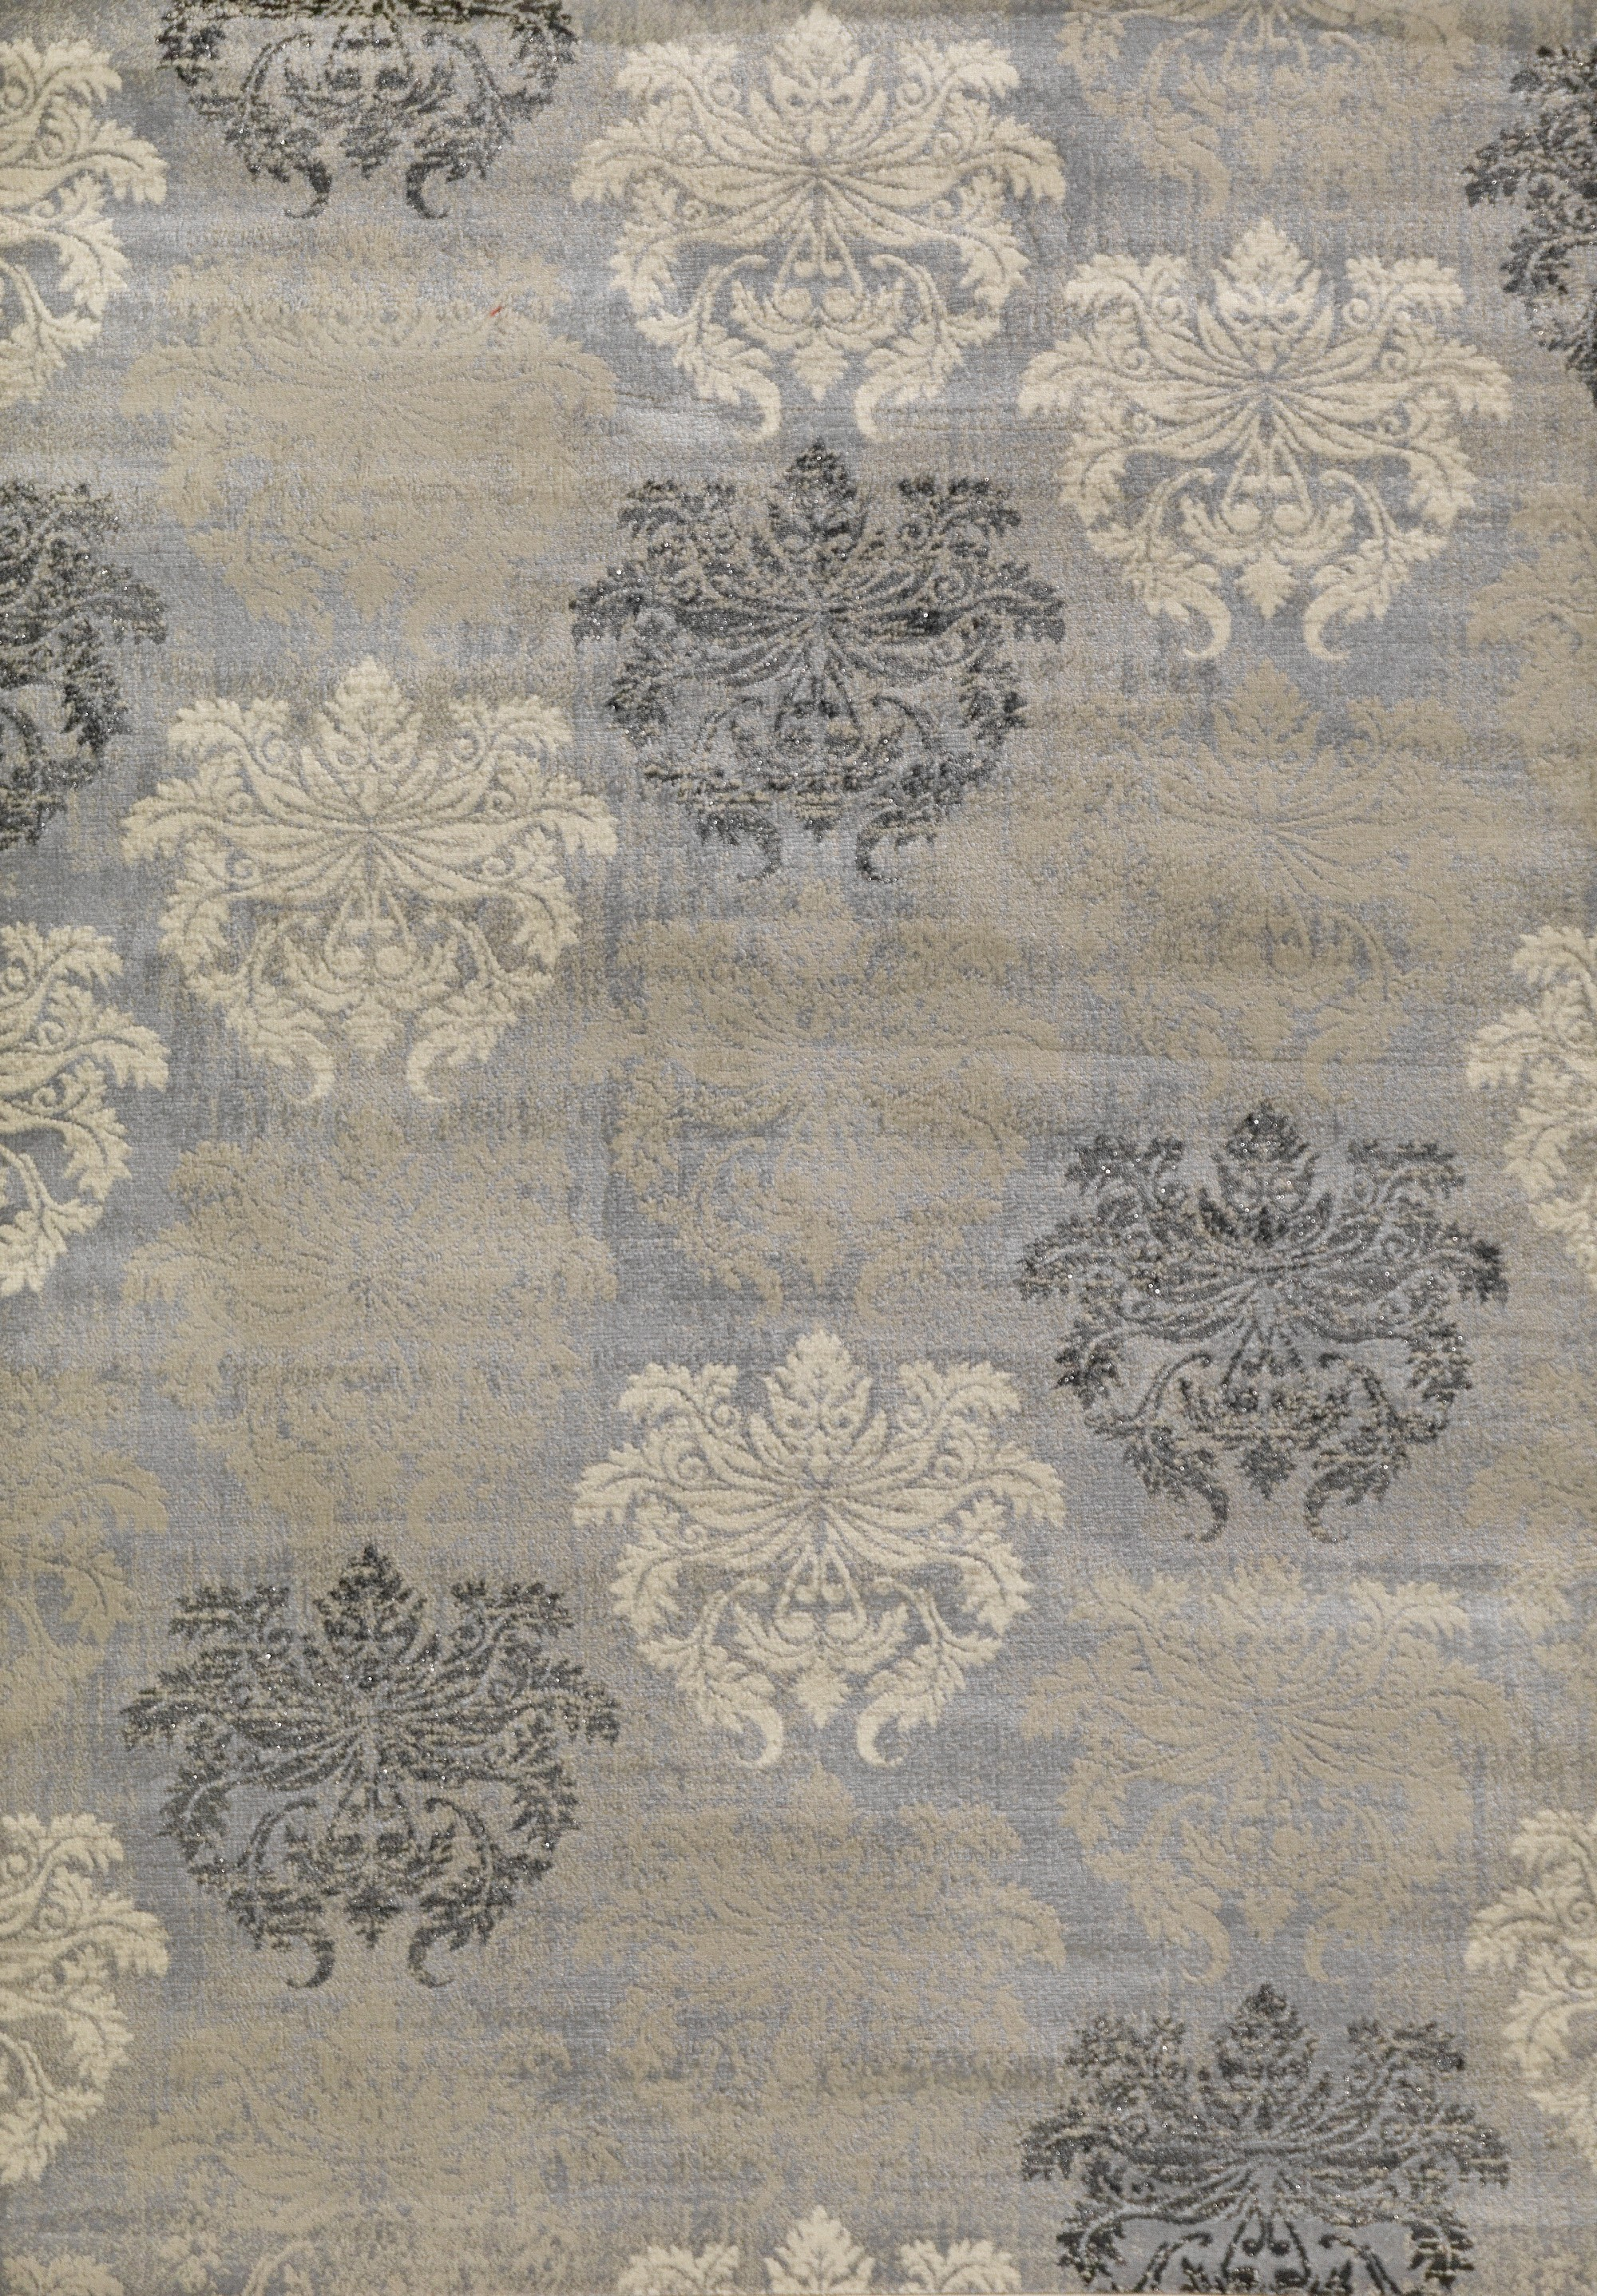 lumina  damask grey area rug by concord global trading  - concord global trading lumina  damask grey area rug